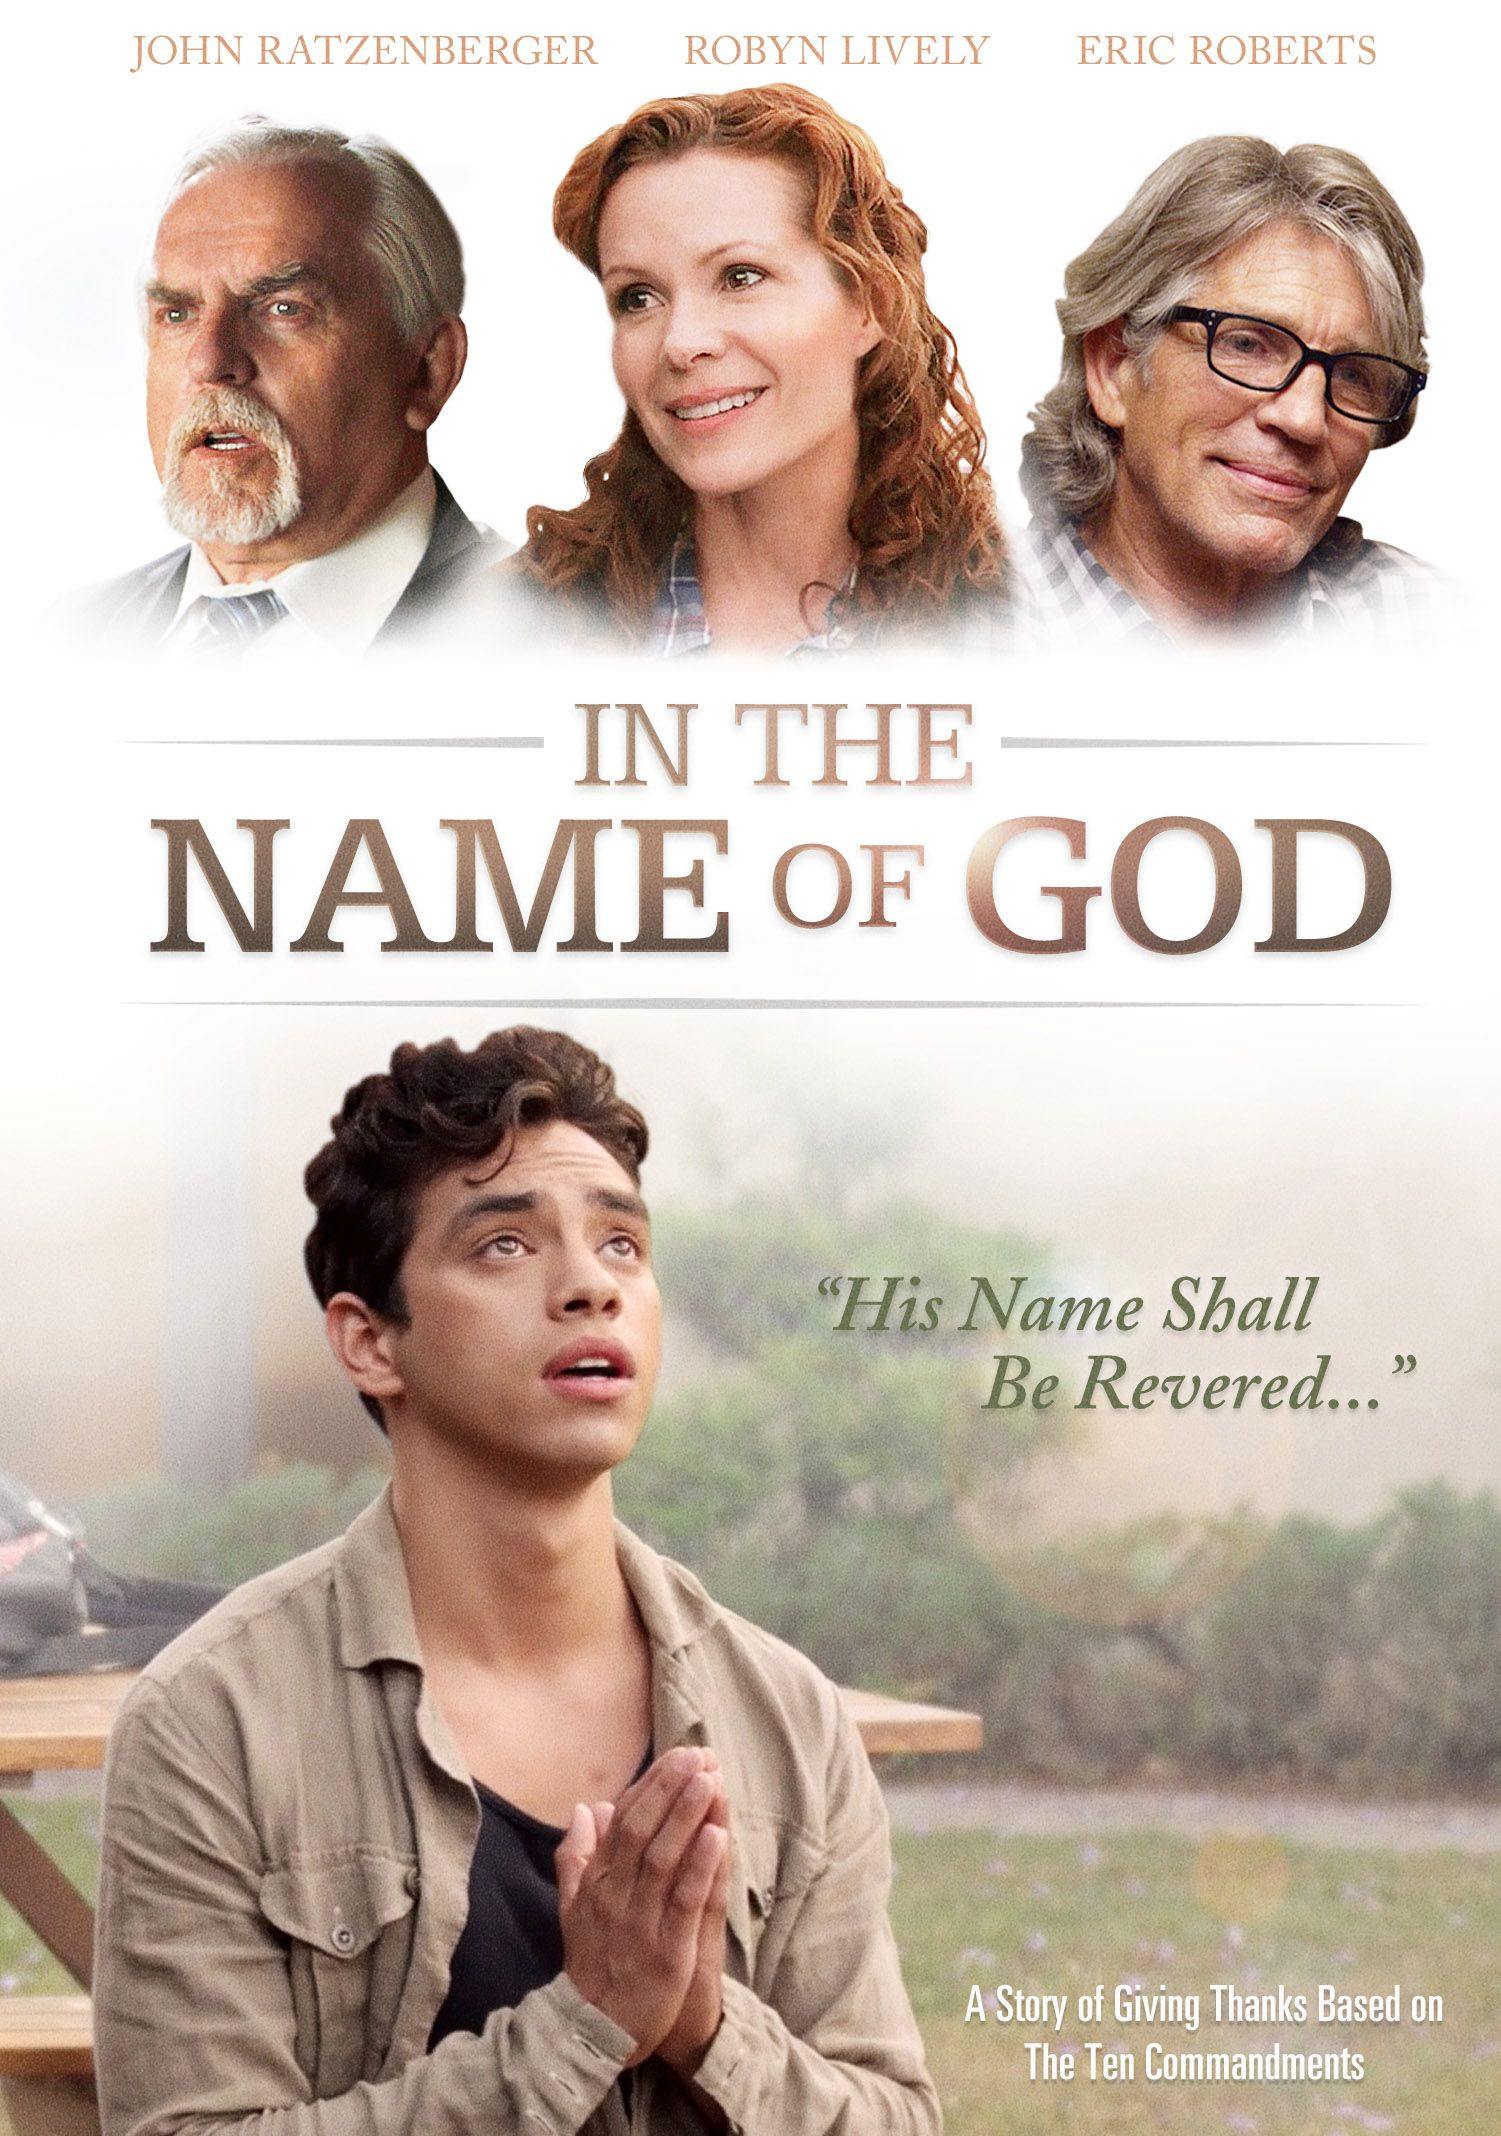 In the Name of God Christian Movie/Film on DVD CFDb